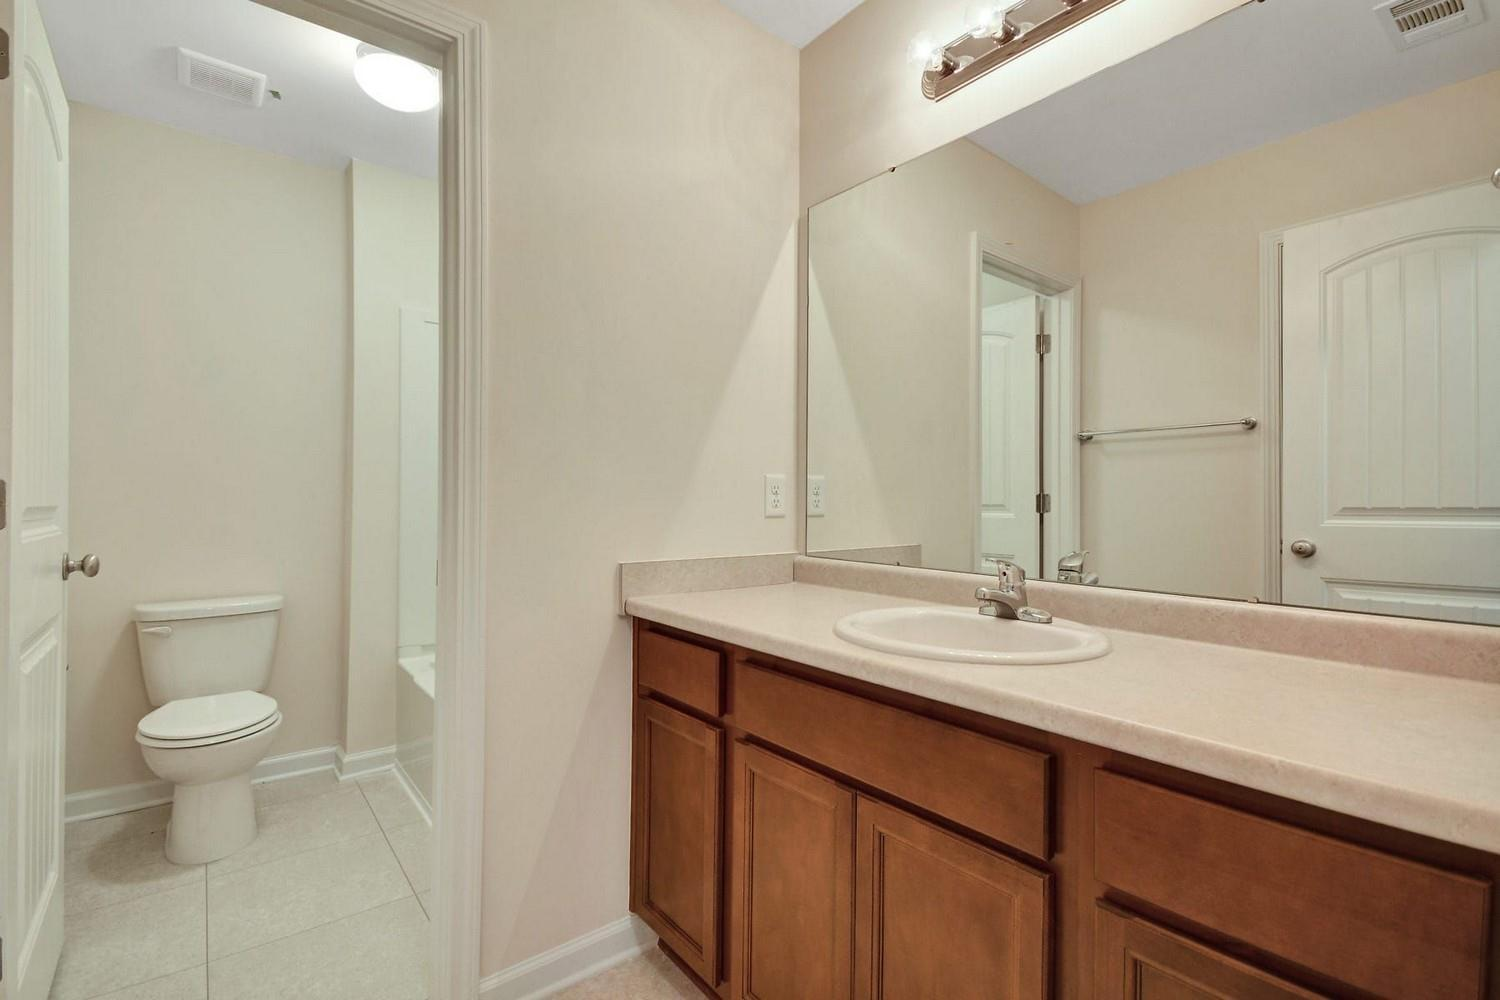 Bathroom featured in The Willow By Lamar Smith Homes in Hilton Head, SC